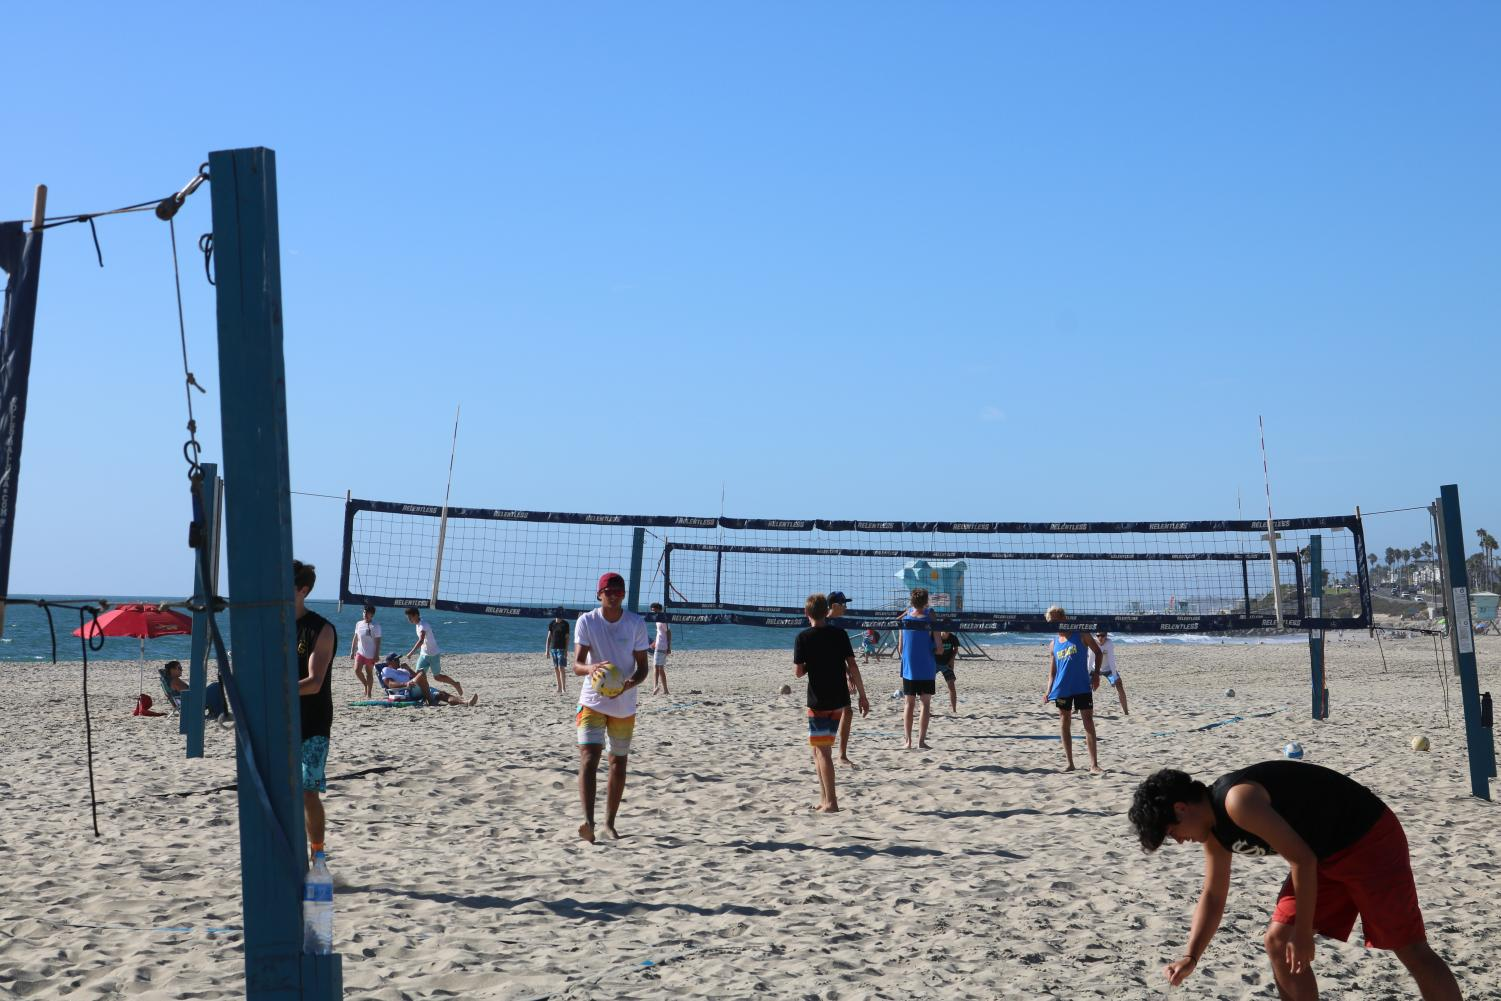 Bobcats and Knights fill up the Tamarack Beach courts in the fifth match of the season.